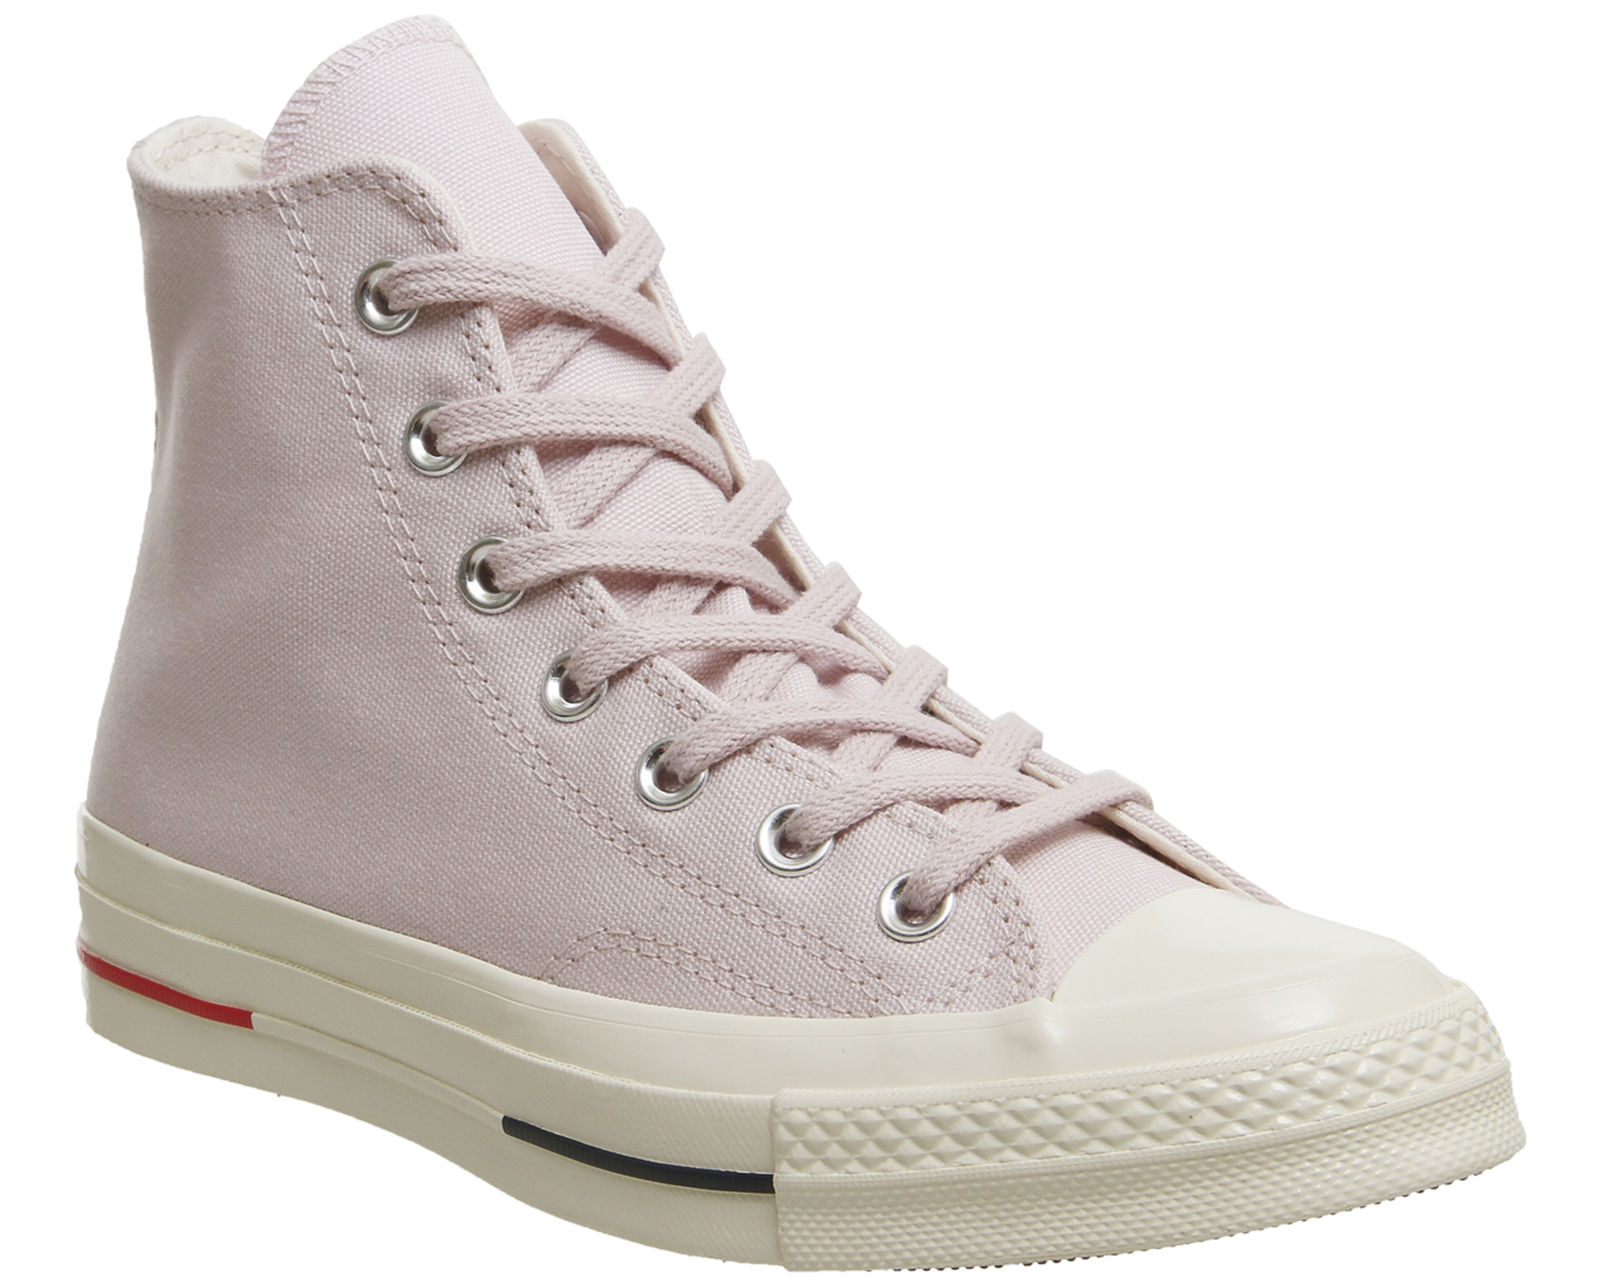 b66e1104c8af4 Sentinel Womens Converse All Star Hi 70 S Barely Rose Gym Red Trainers Shoes